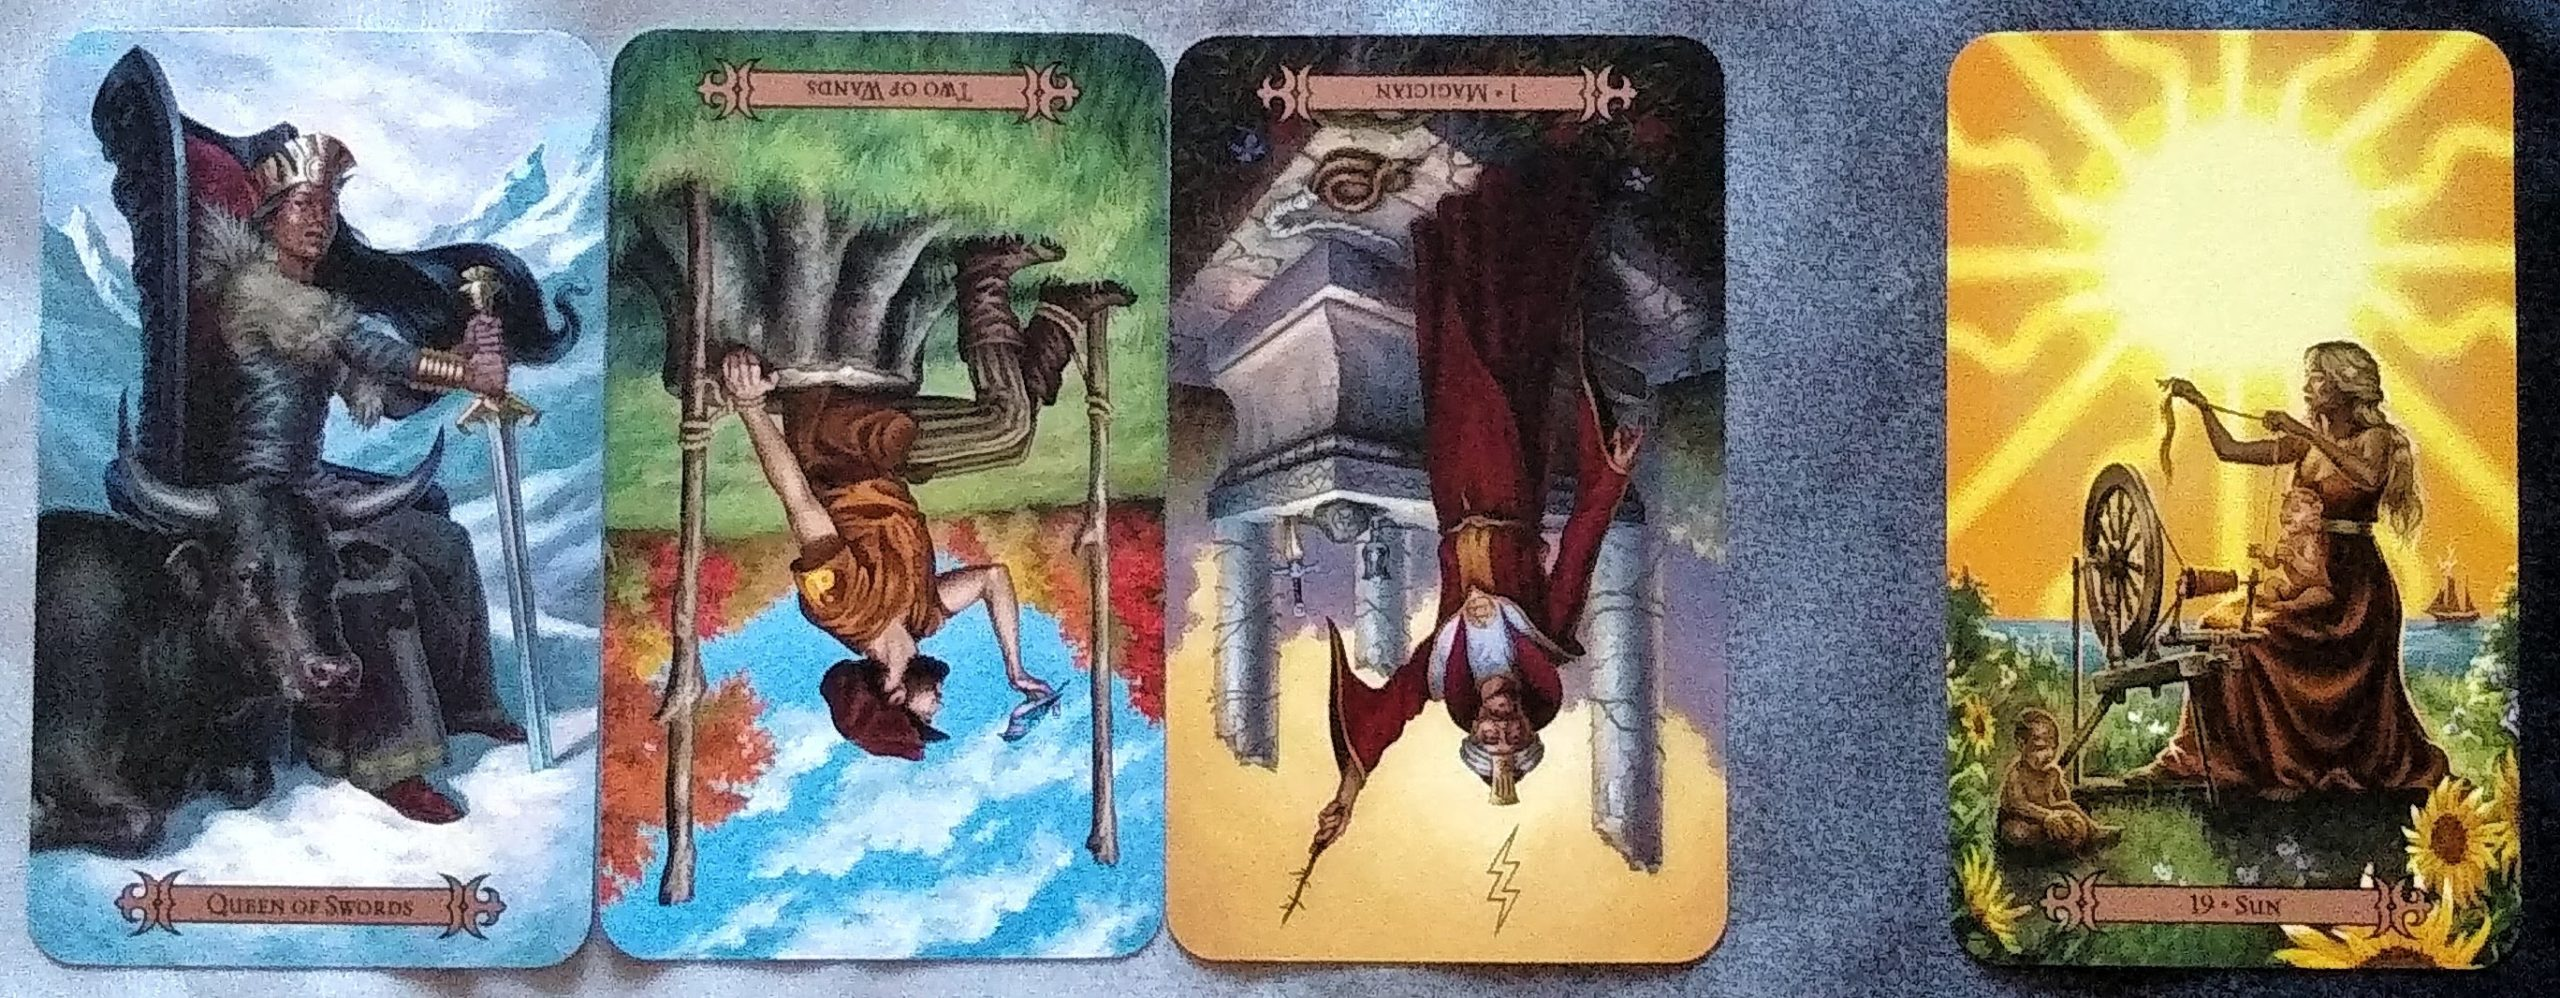 Modern Spellcaster's Tarot: Queen of Swords, Two of Wands (reversed), Magician [I] (reversed), and Sun [XIX].